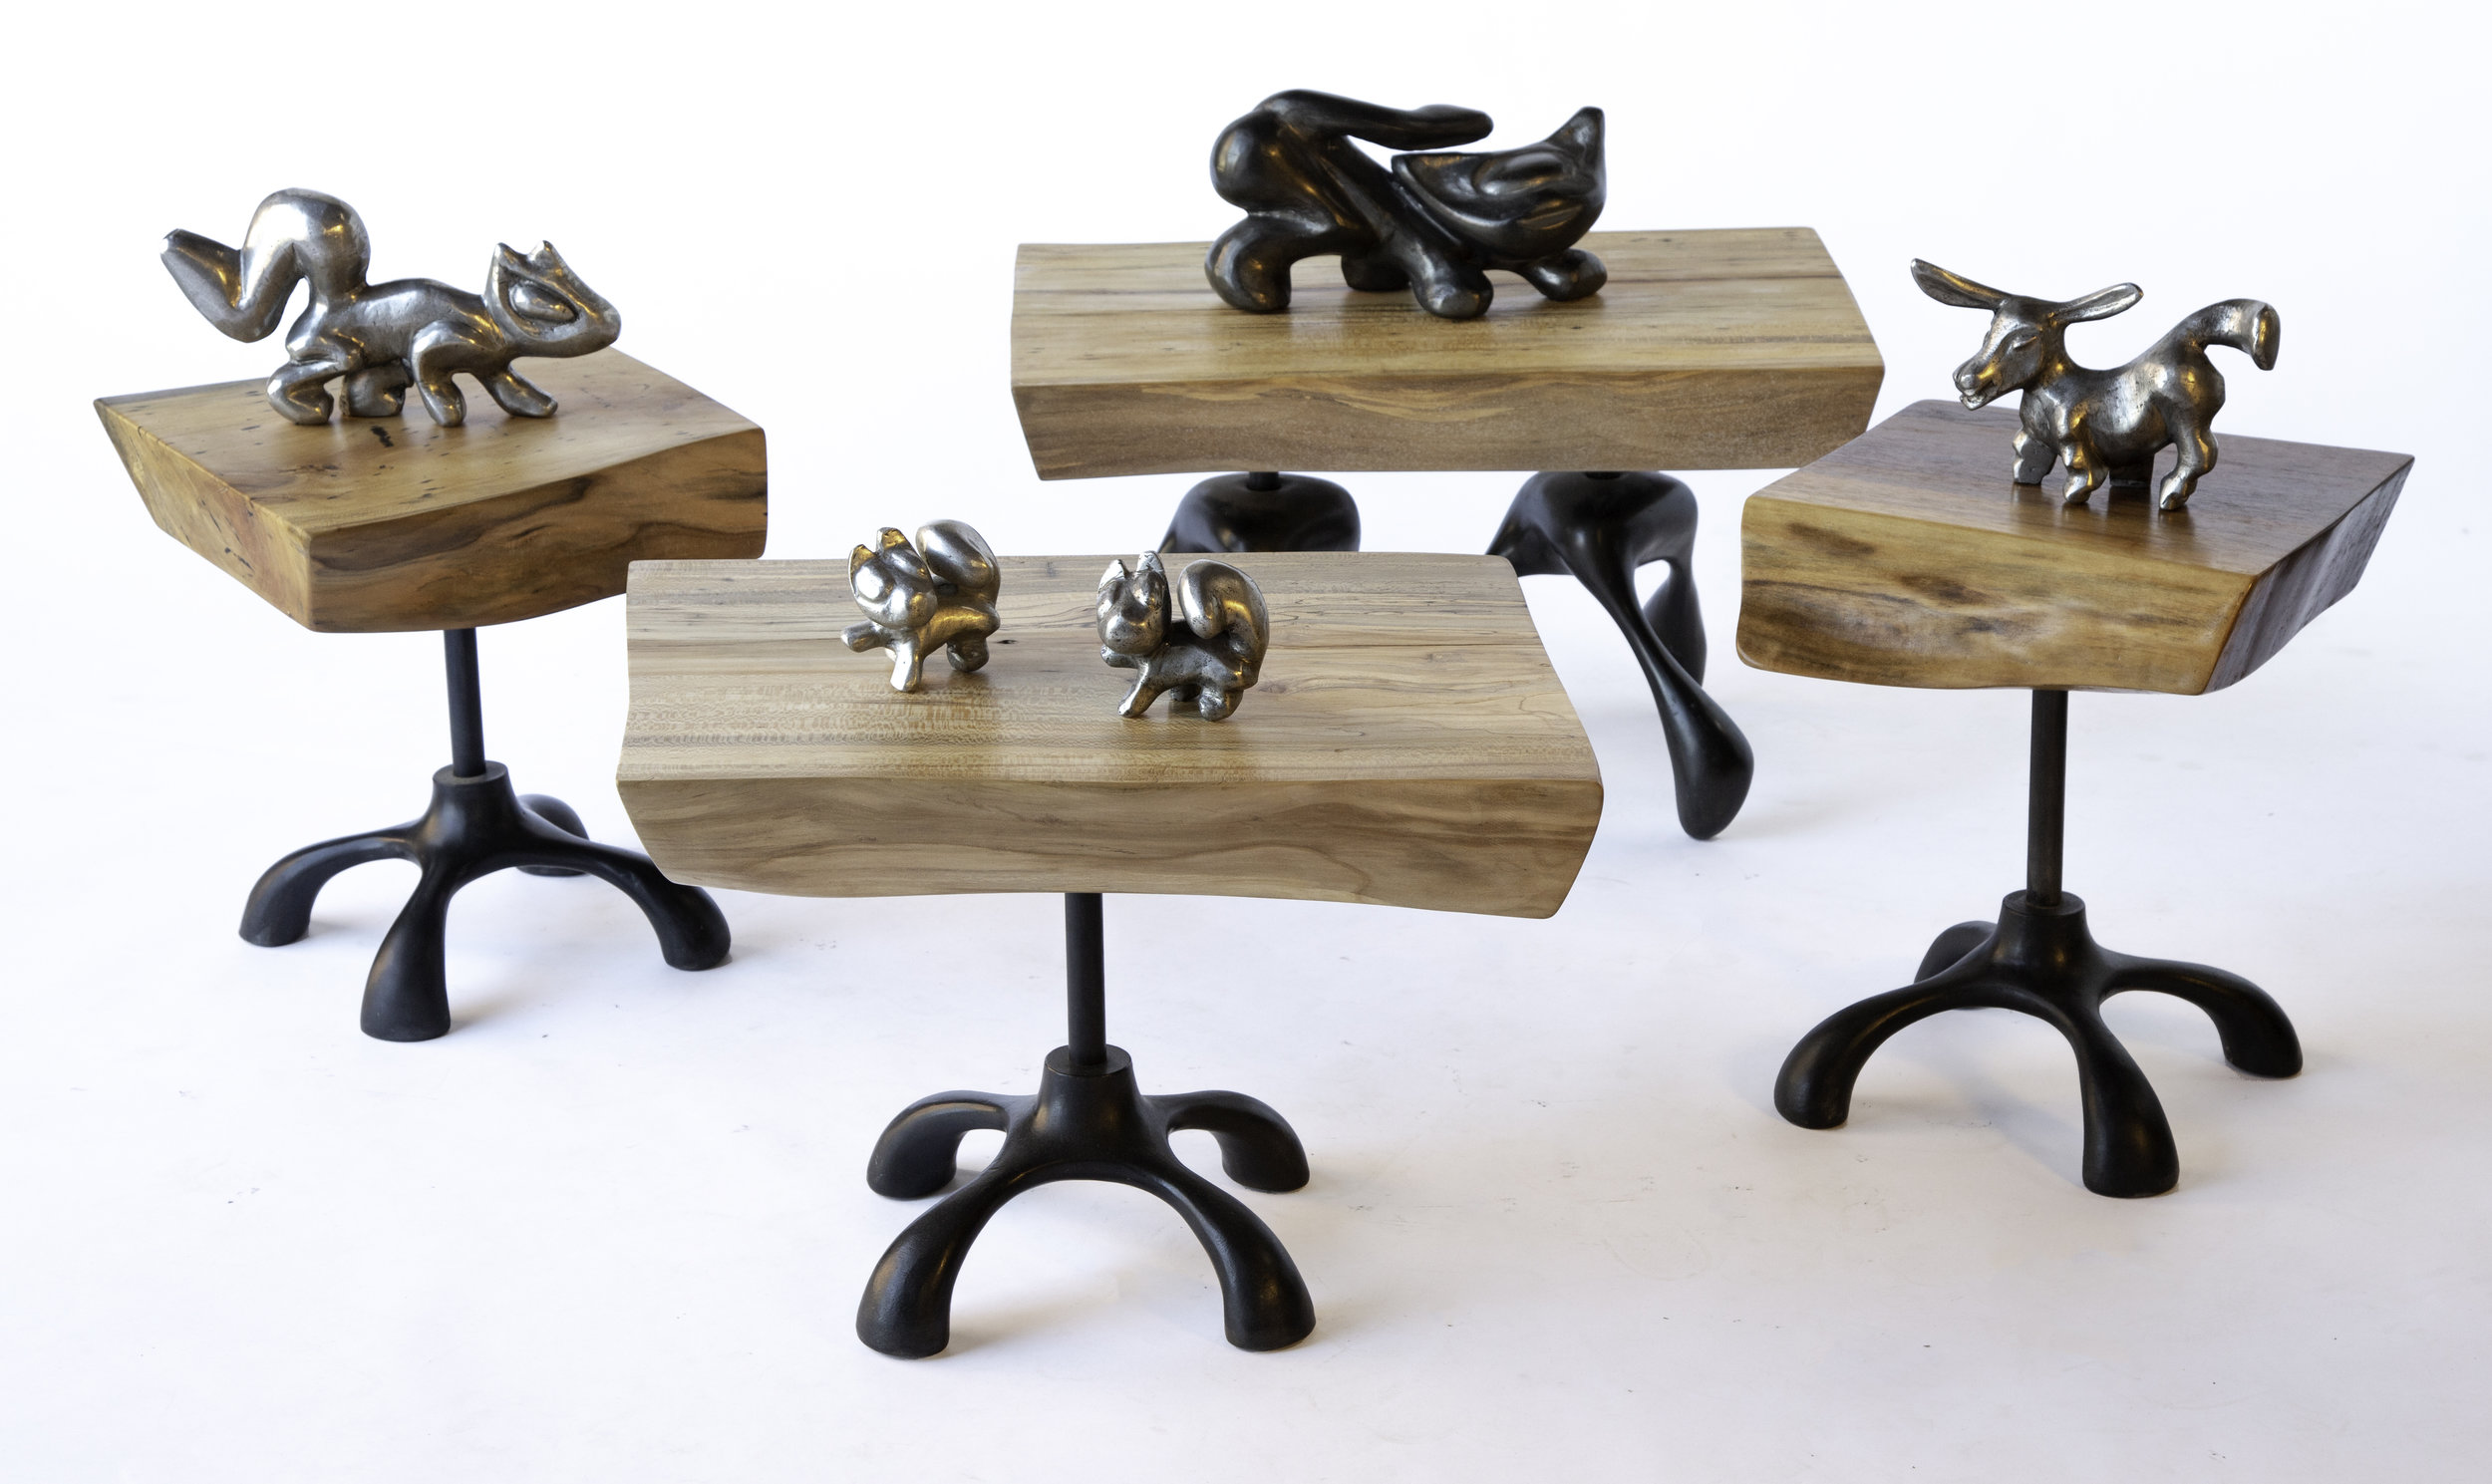 Chunk Table Collection with Animals.jpg